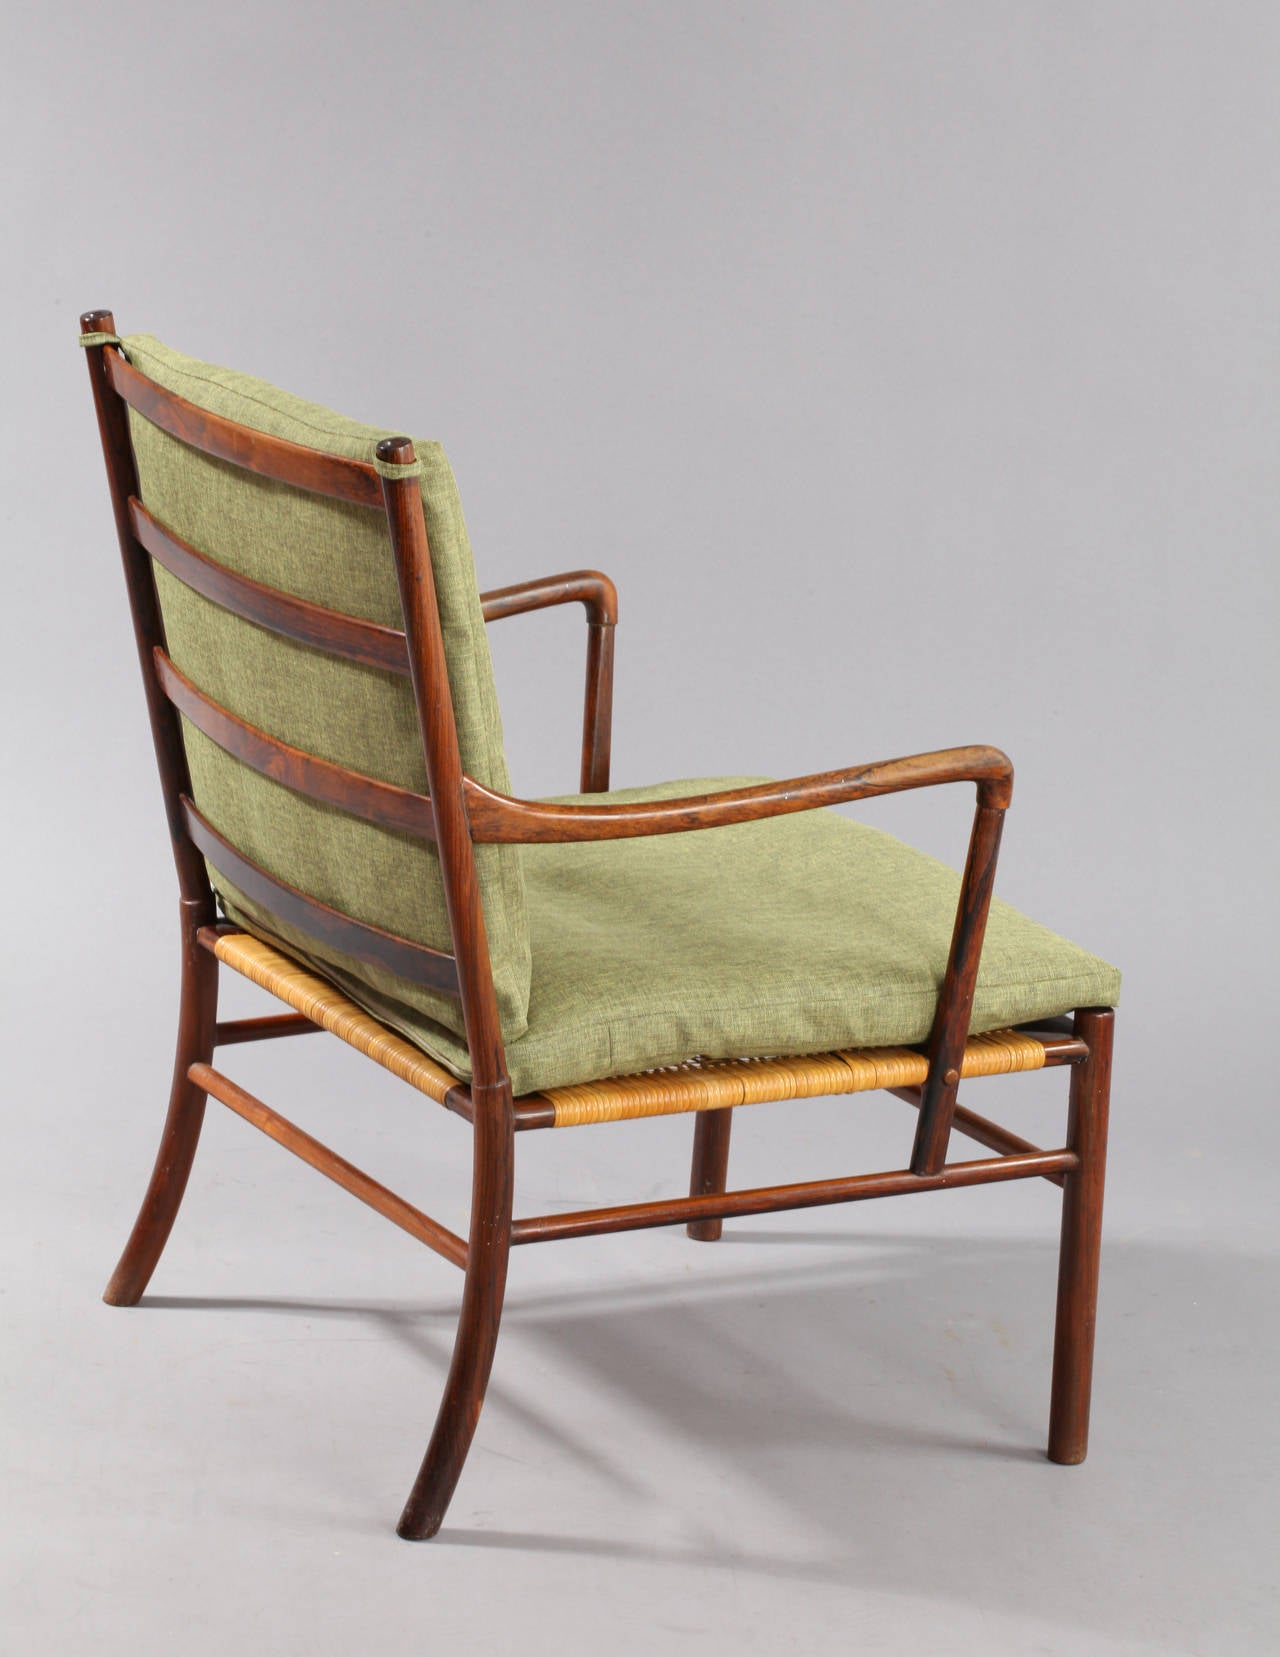 Pair of rosewood colonial chairs by ole wanscher for p for P jeppesen furniture